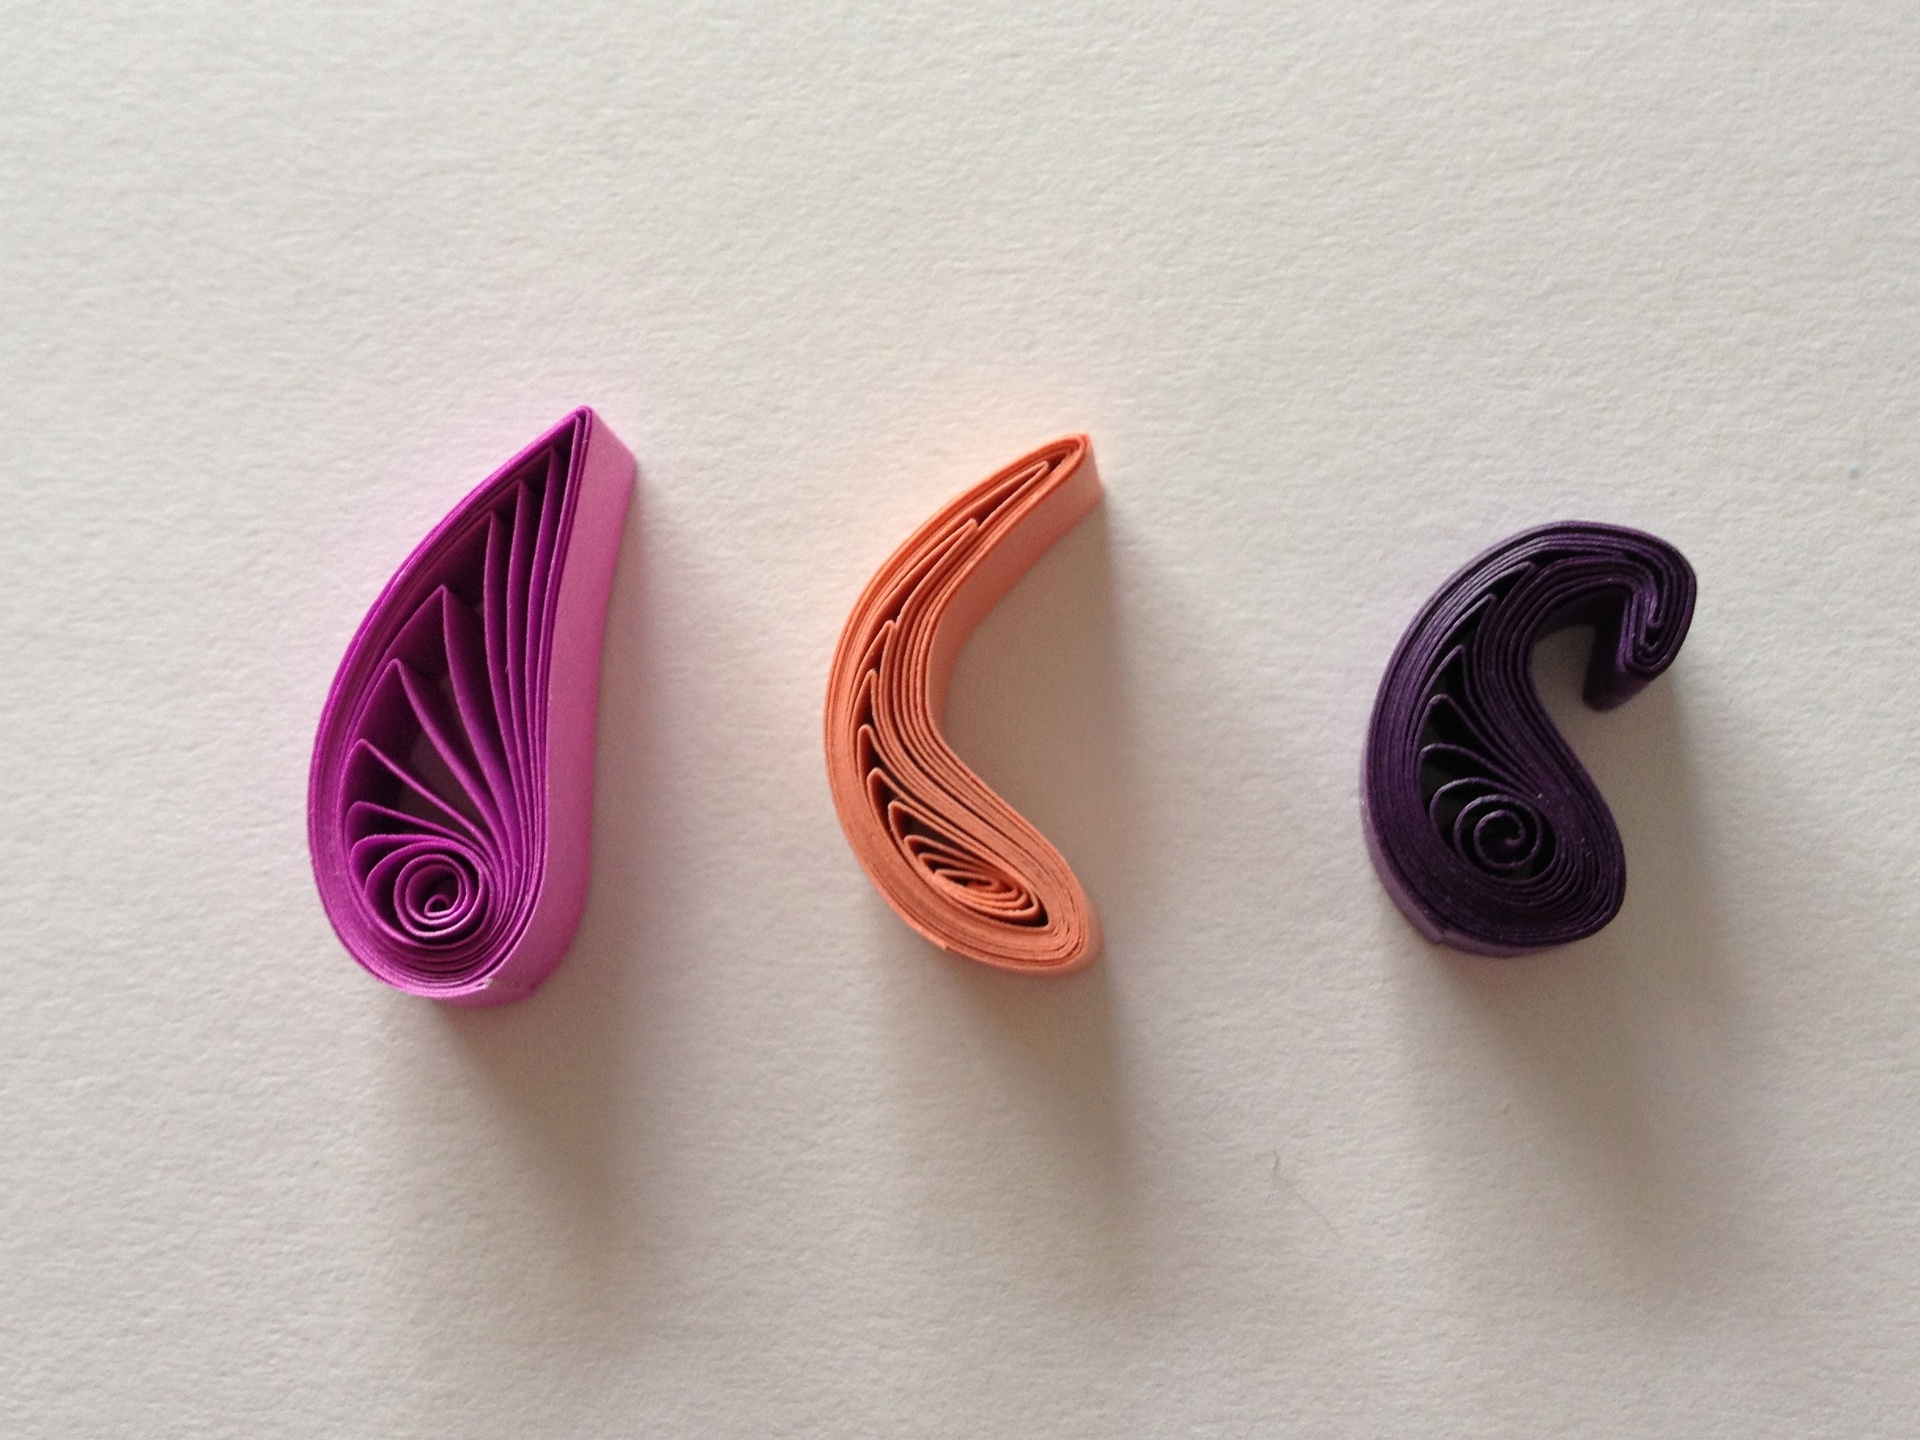 Paper Quilling Shapes Tutorial  for How To Make Quilling Shapes  585hul